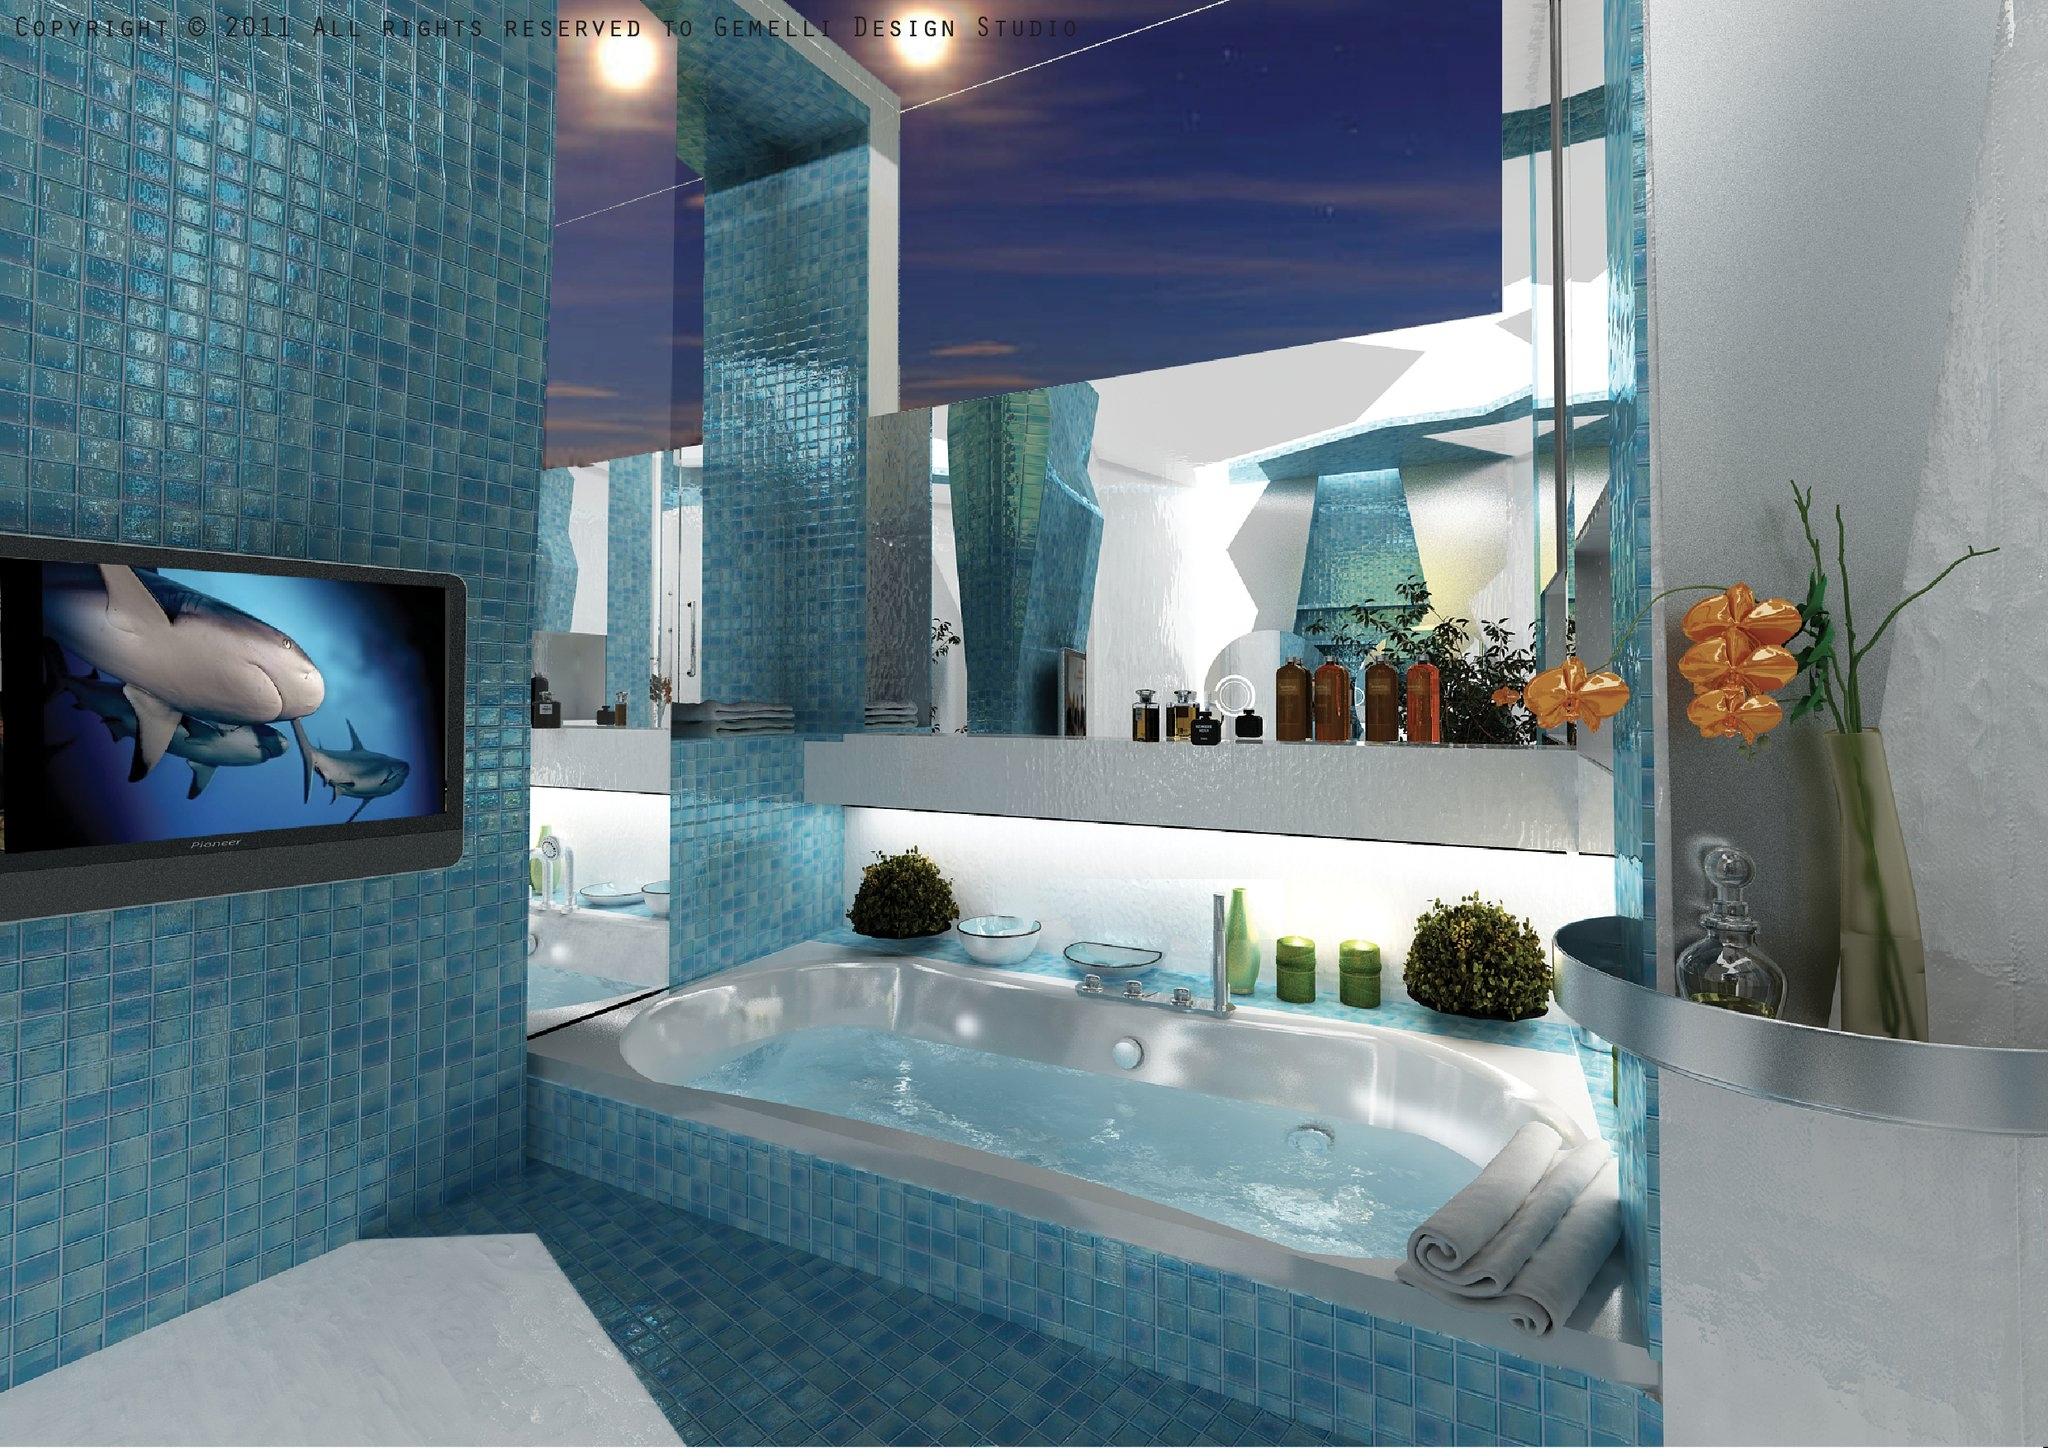 good-cool-interior-design-ideas-4-blue-bathroom-tile-design-ideas-2048-x-1448